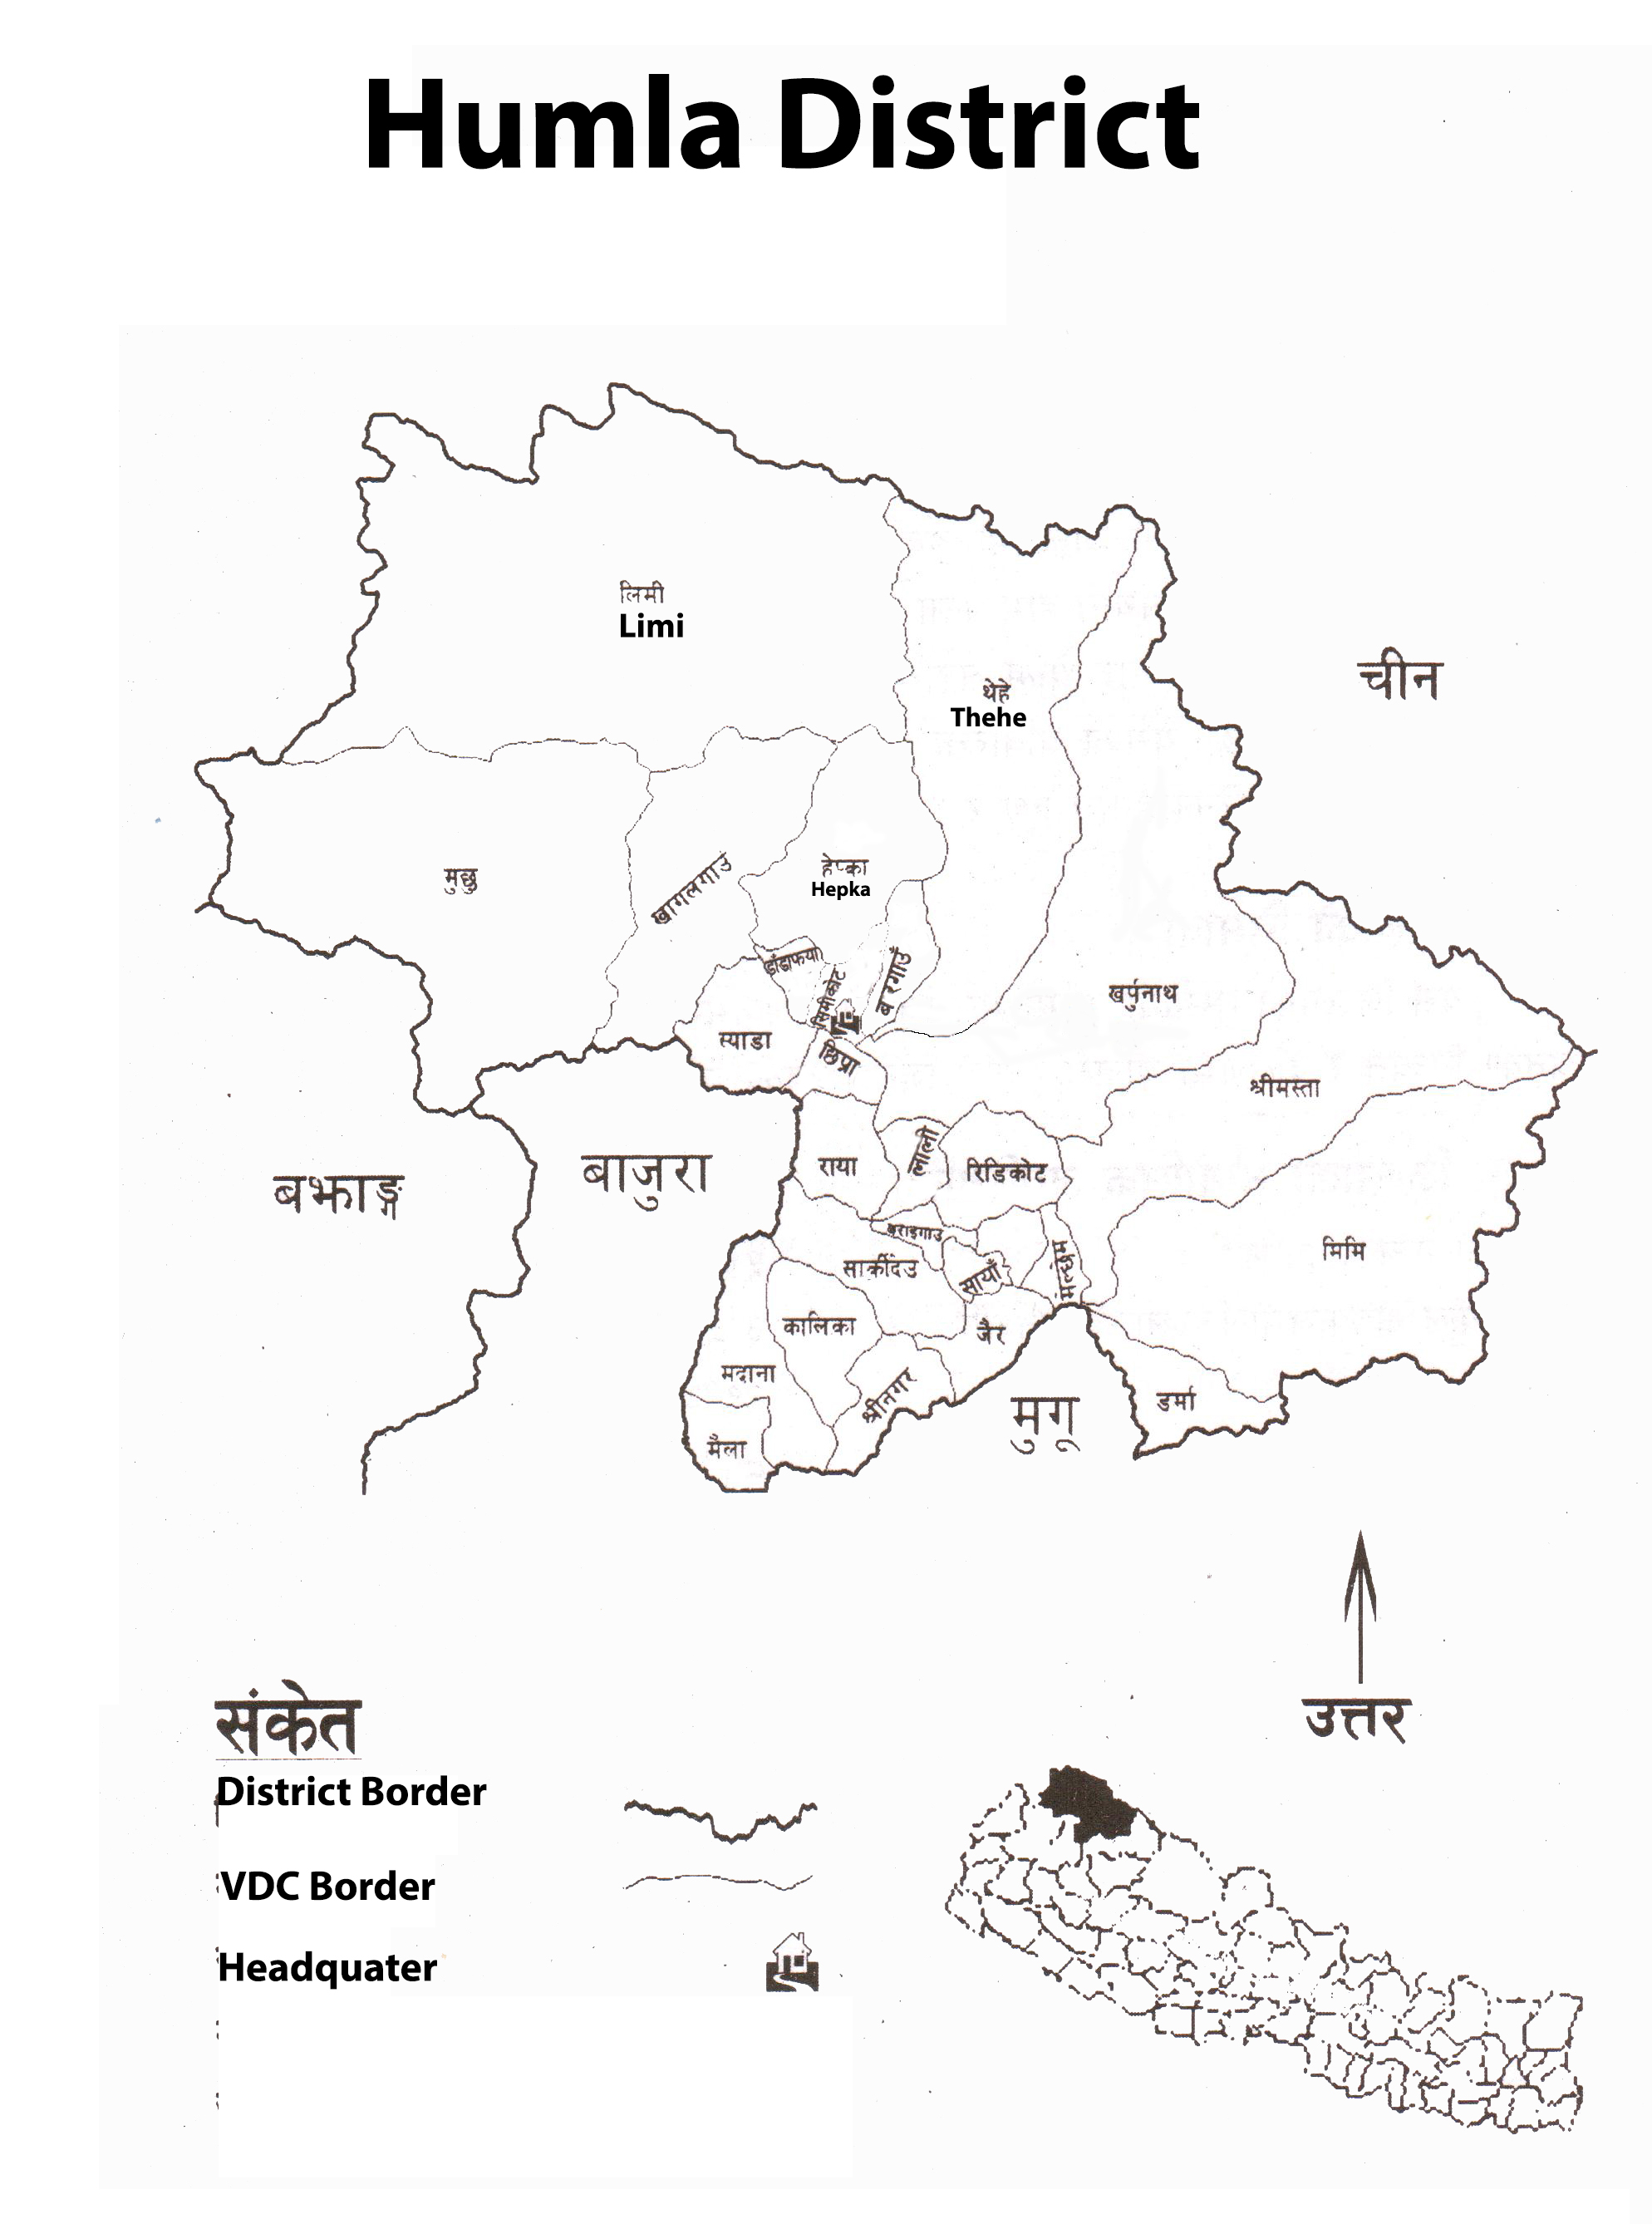 About Humla a District in Karnali